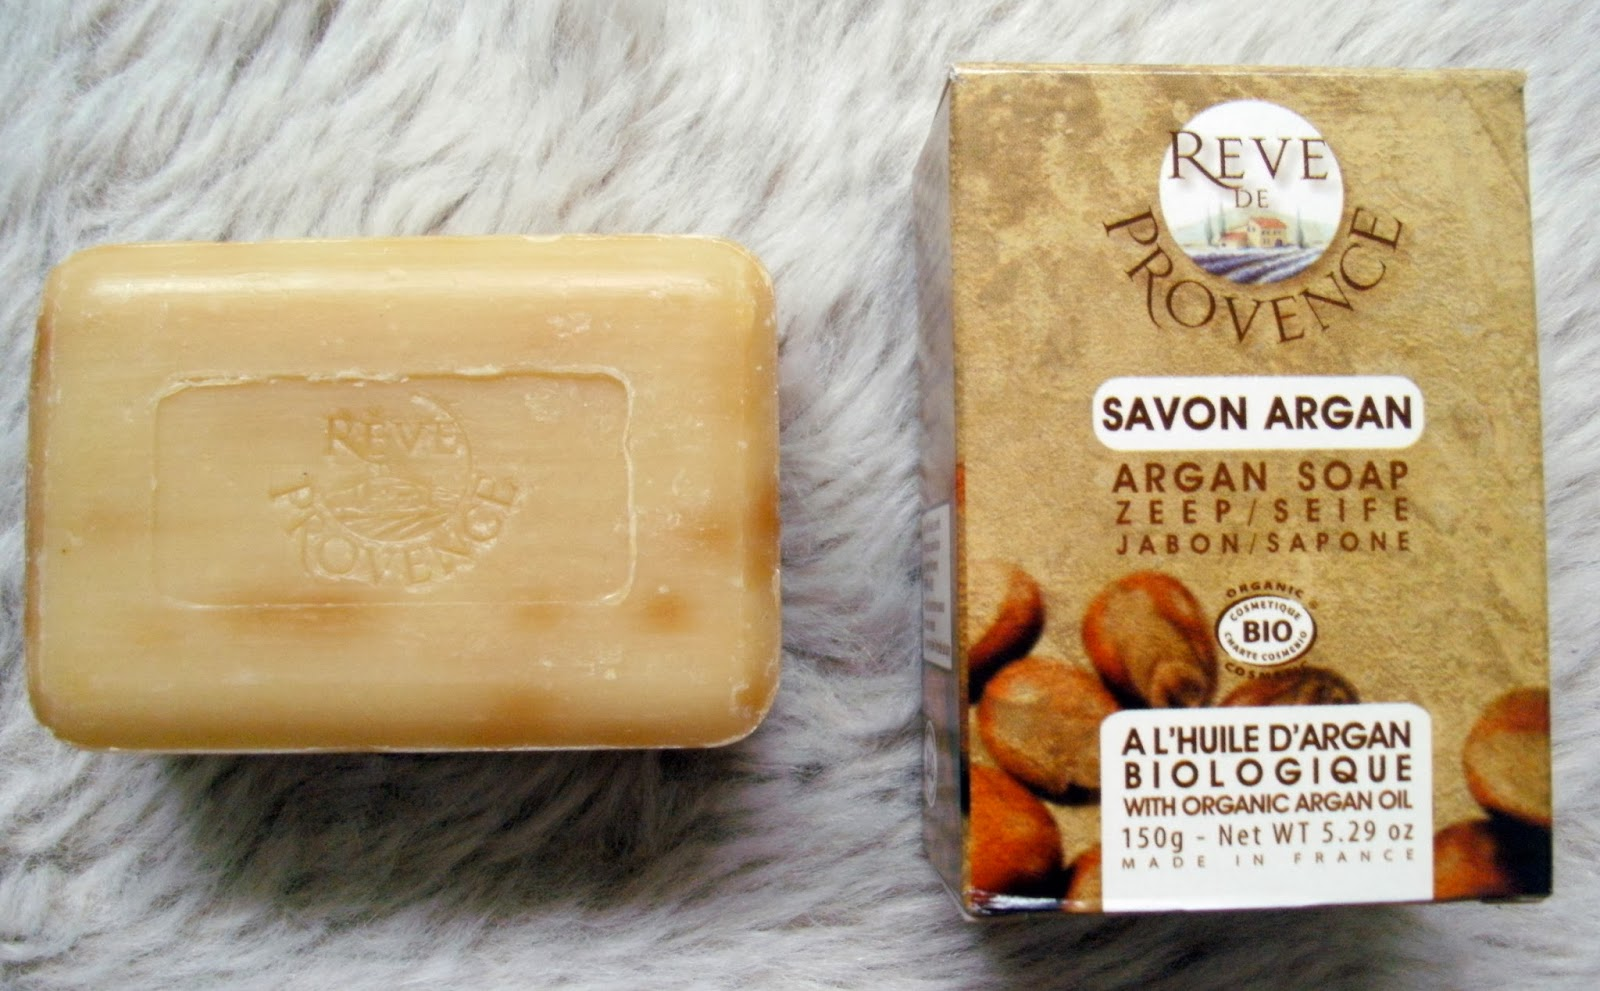 Reve de Provence Argan Oil Organic Soap Bar